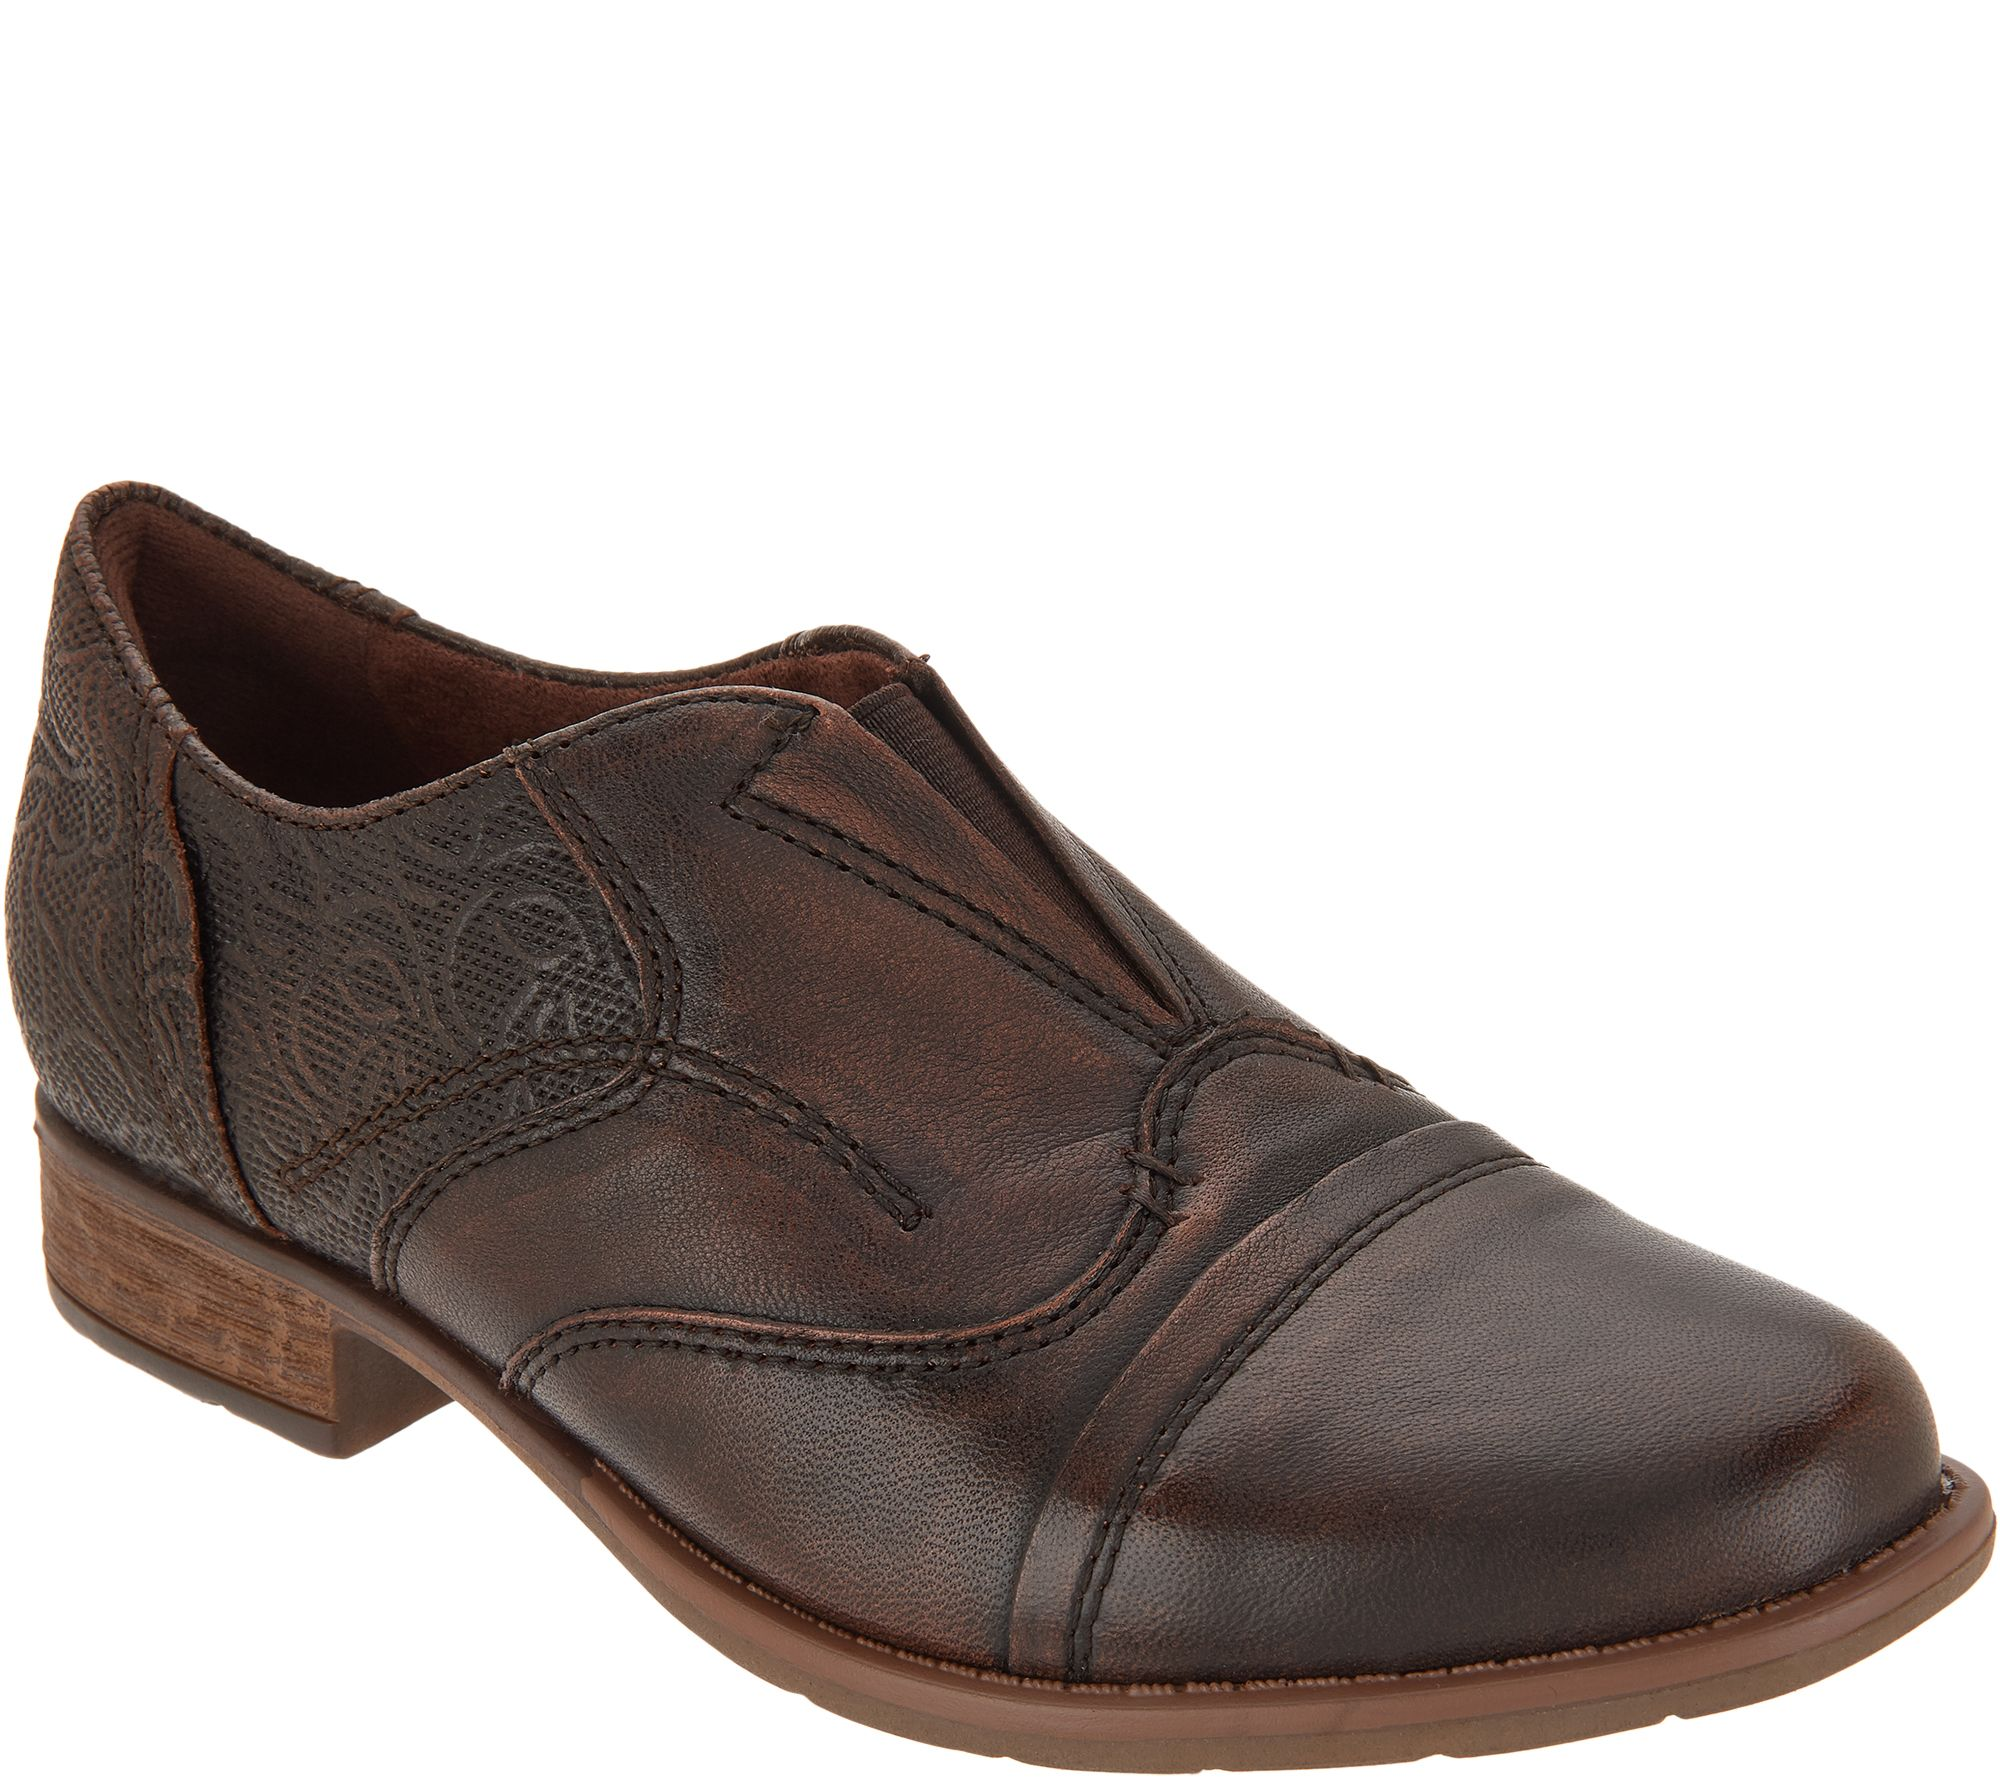 9a77cf90a412 Earth Leather Slip-On Shoes - Blythe — QVC.com